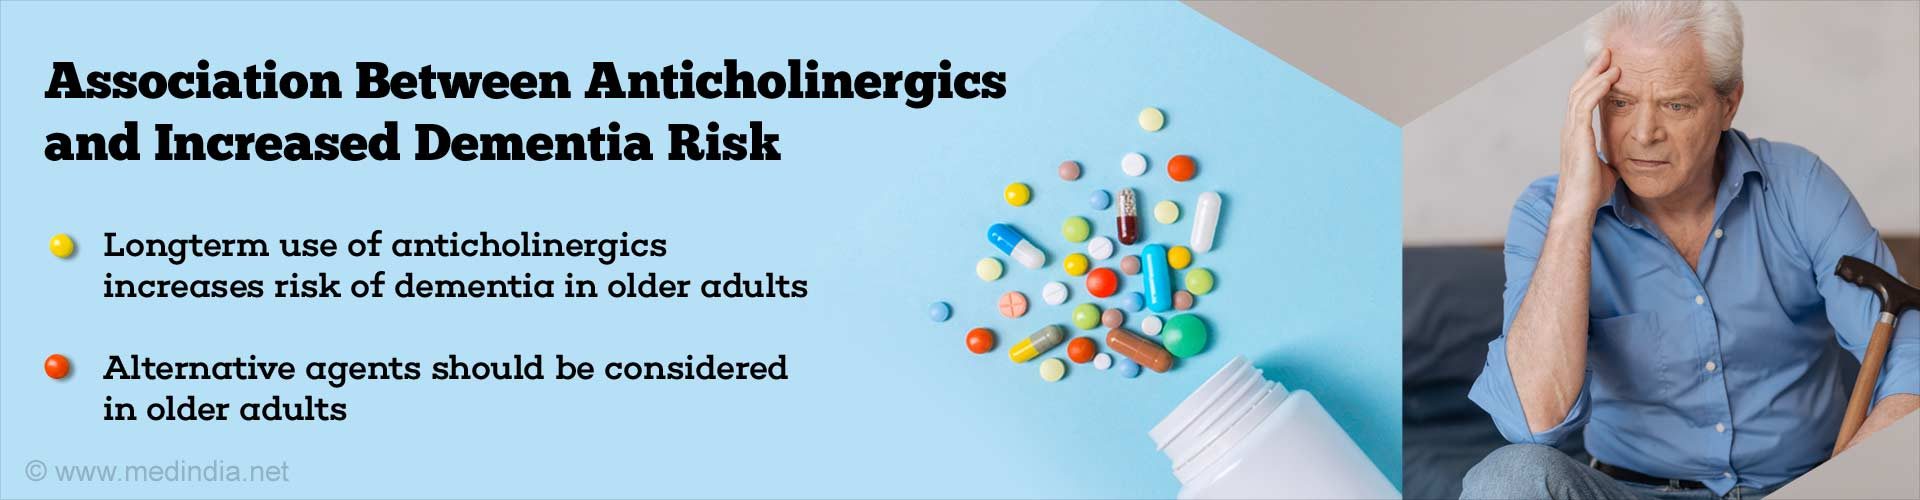 association between anticholinergics and increases dementia risk